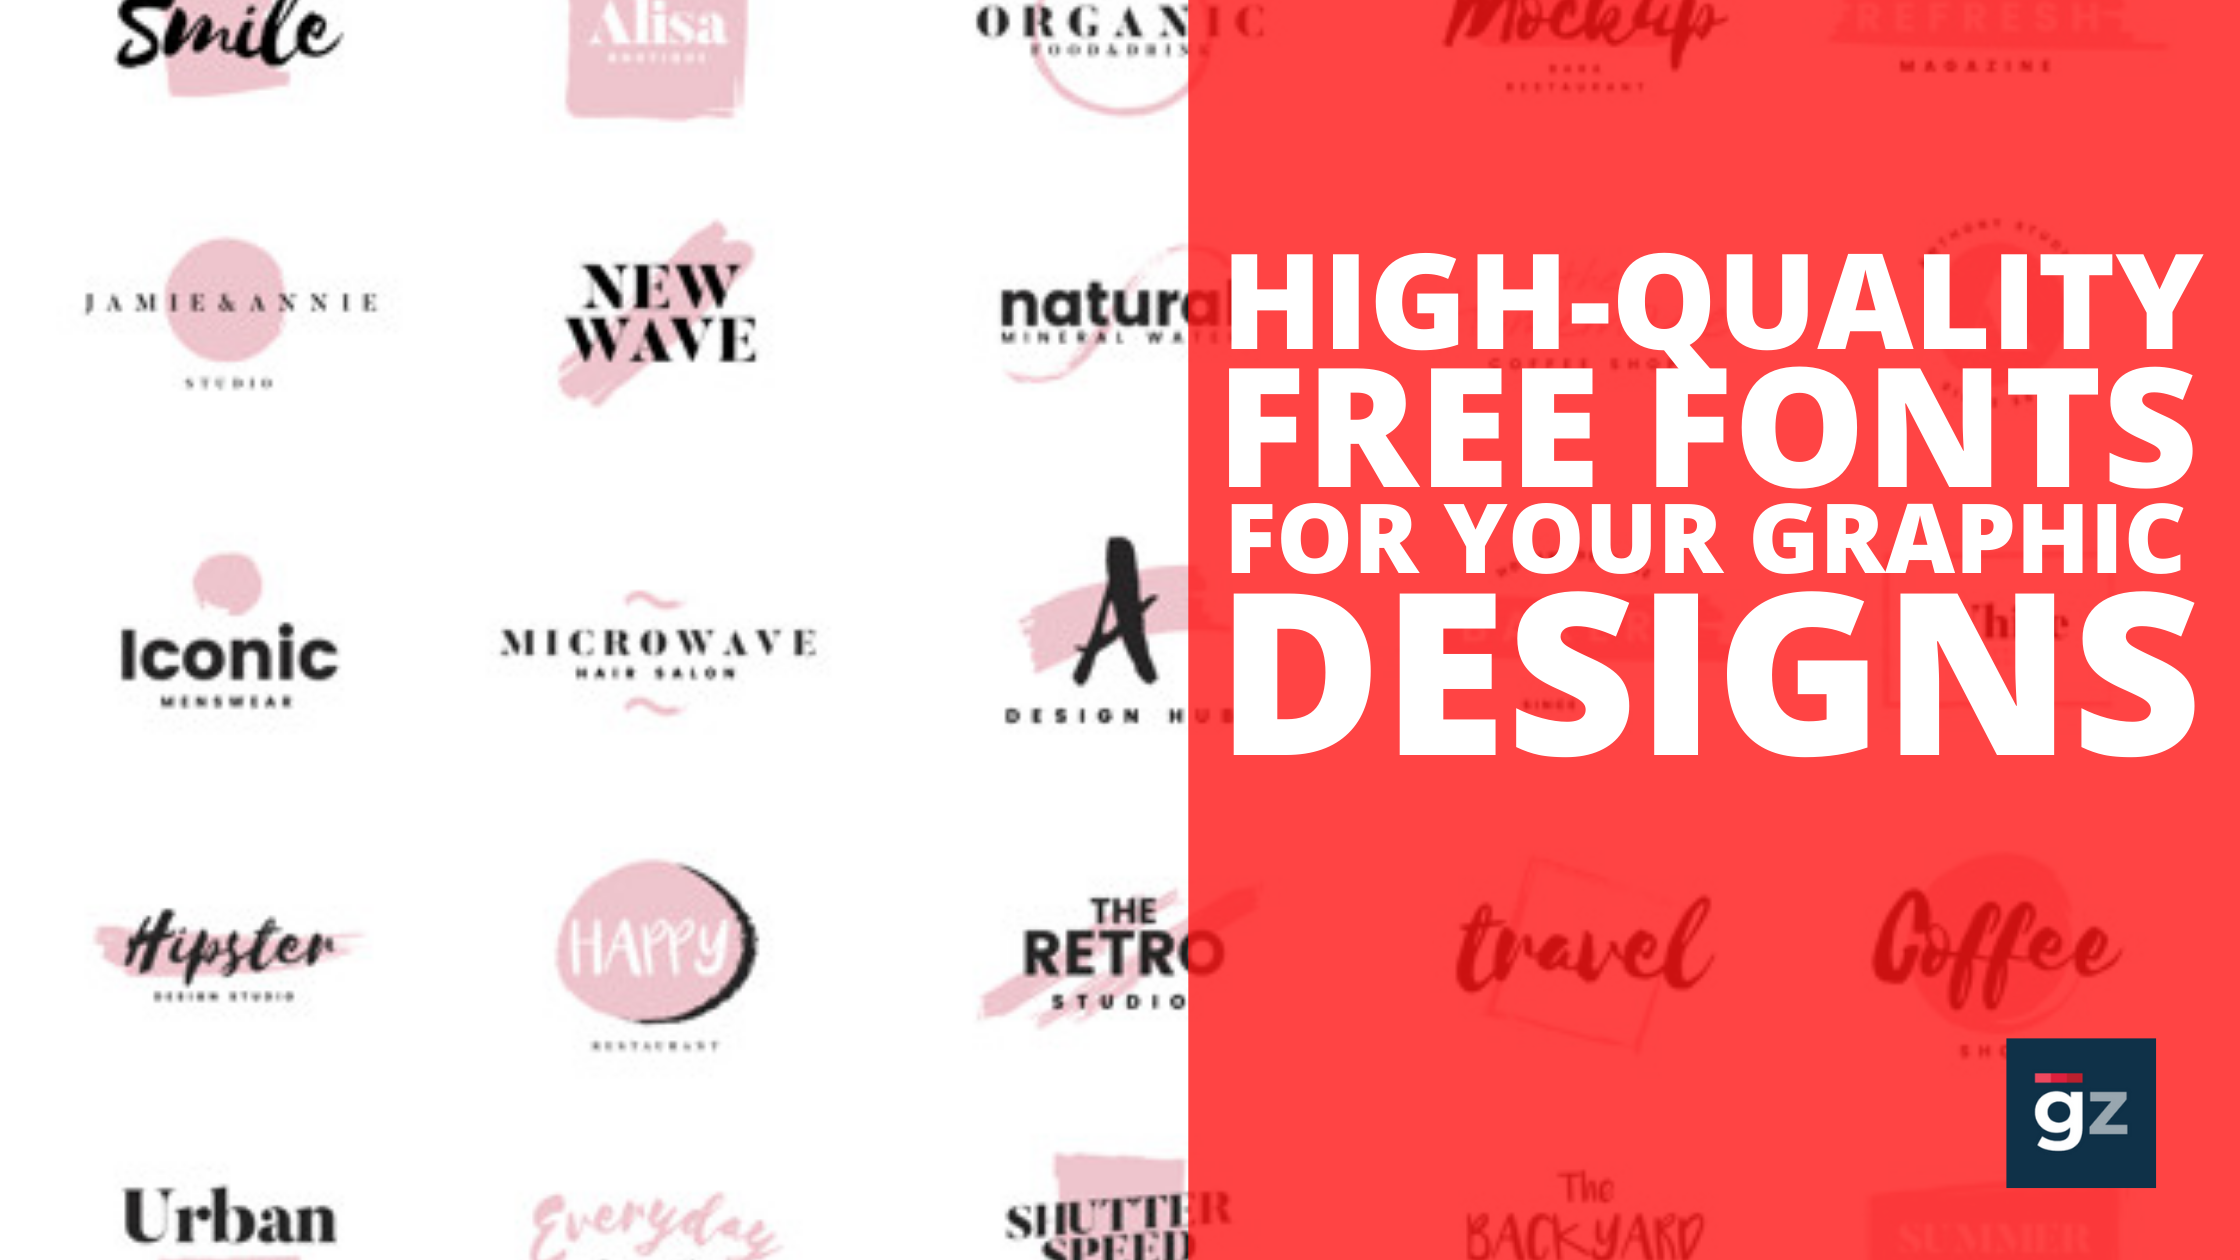 50 Fresh High-Quality Free Fonts For Your Graphic Designs